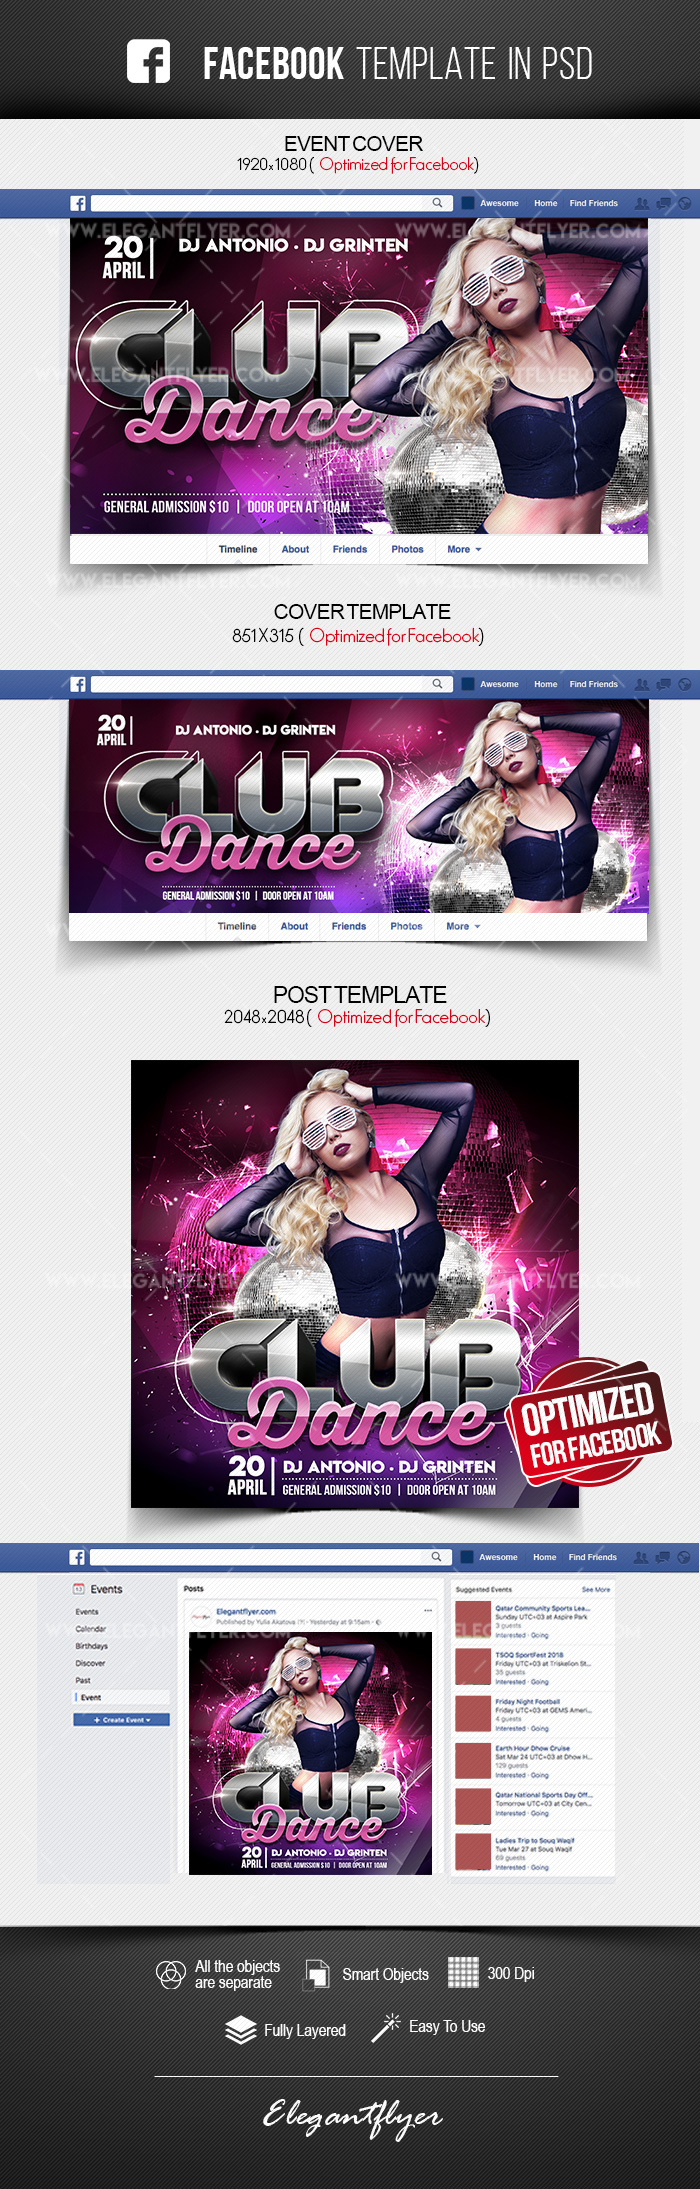 Club Dance – Facebook Cover Template in PSD + Post + Event cover